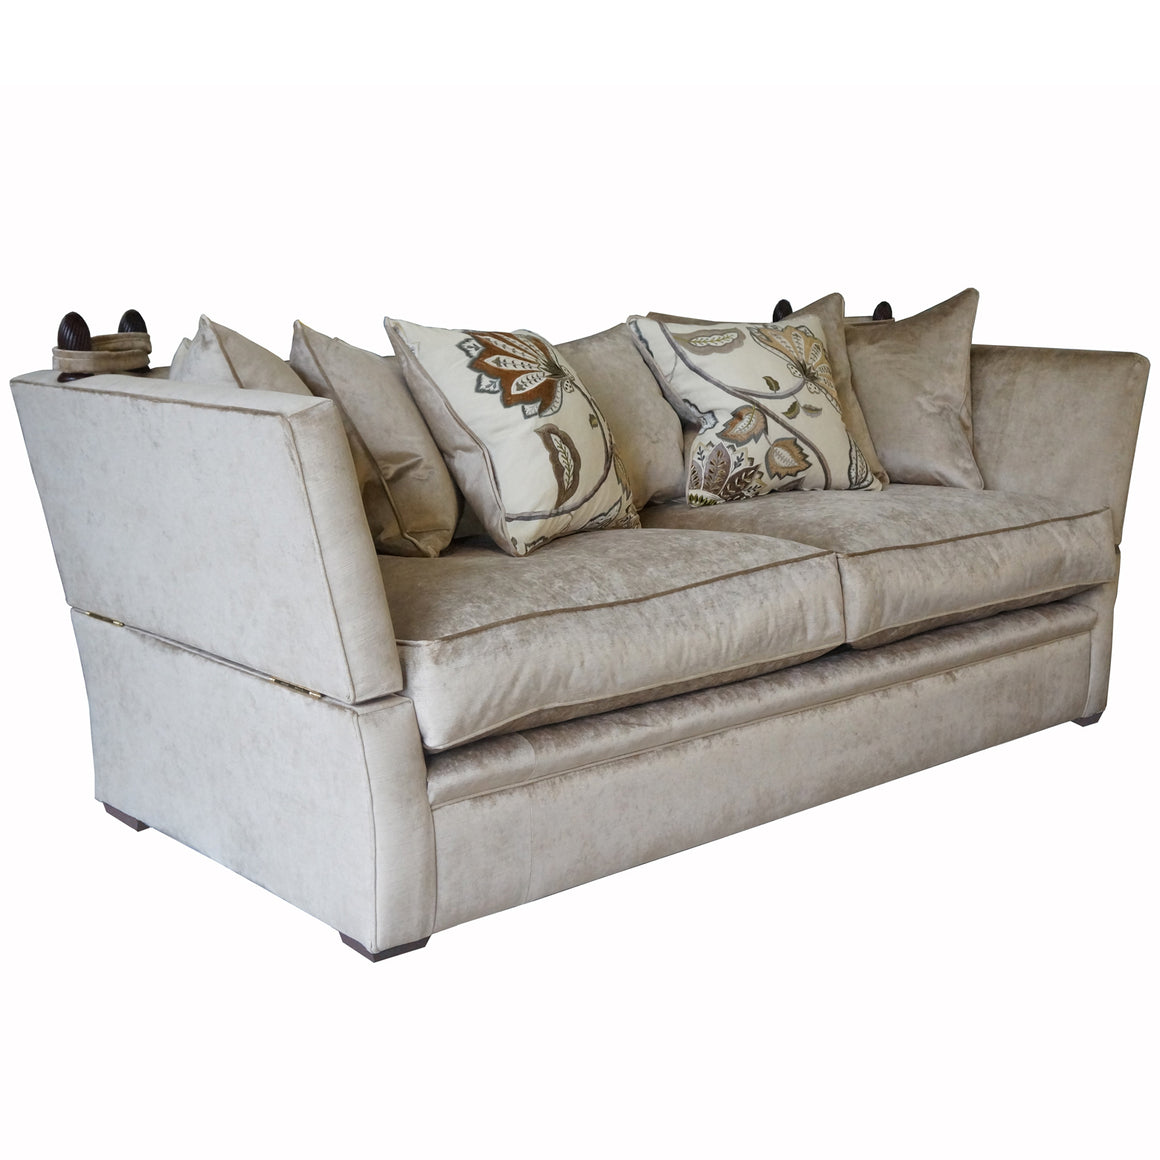 Greenwich Sofa and chairs in Cascada Velvet HALF PRICE TO ORDER